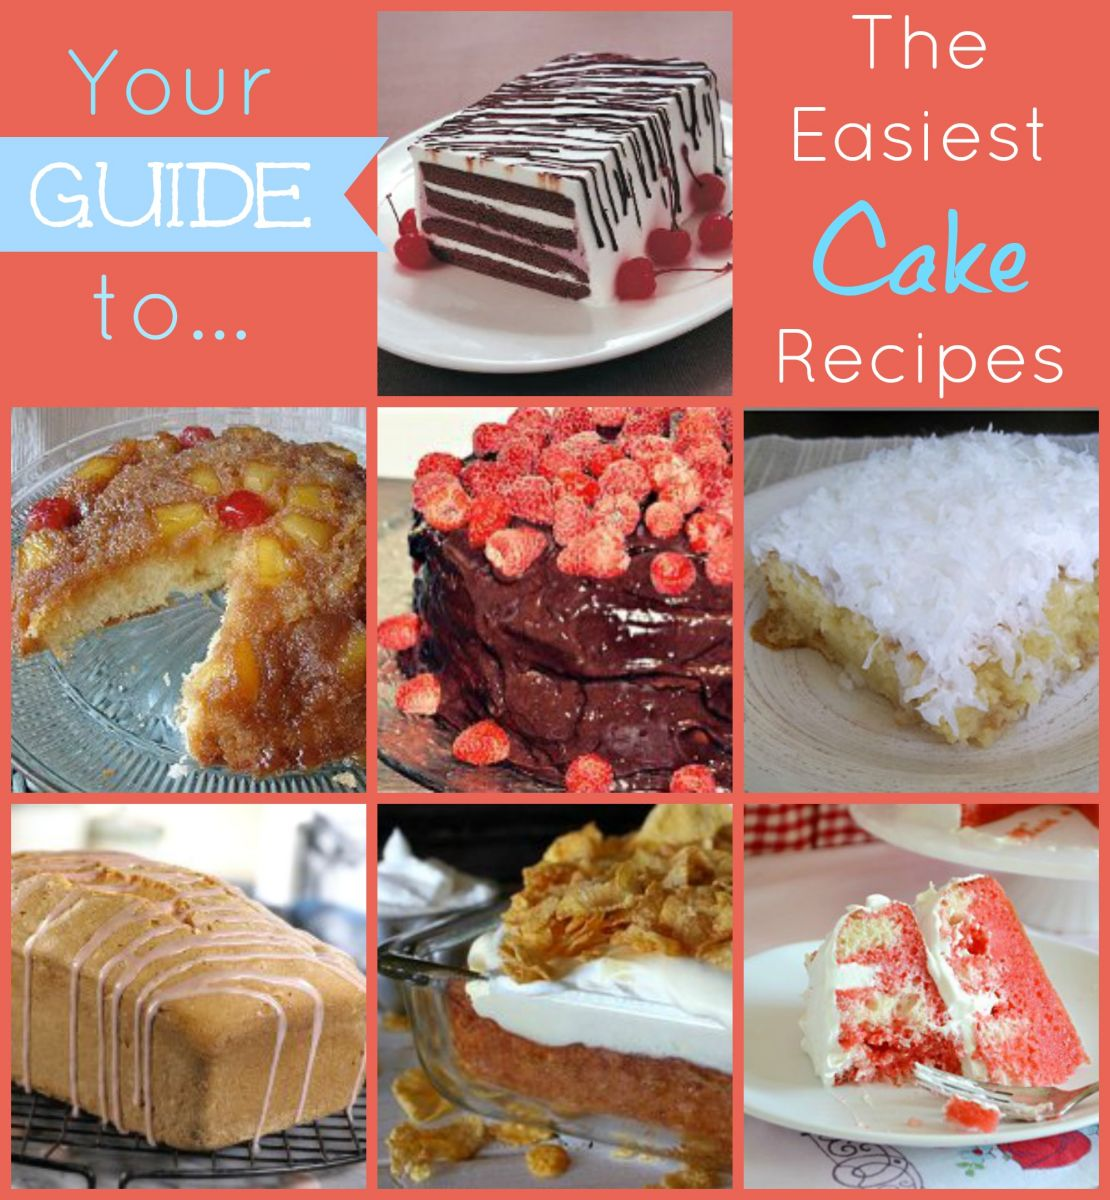 Your Guide to the Easiest Cake Recipes